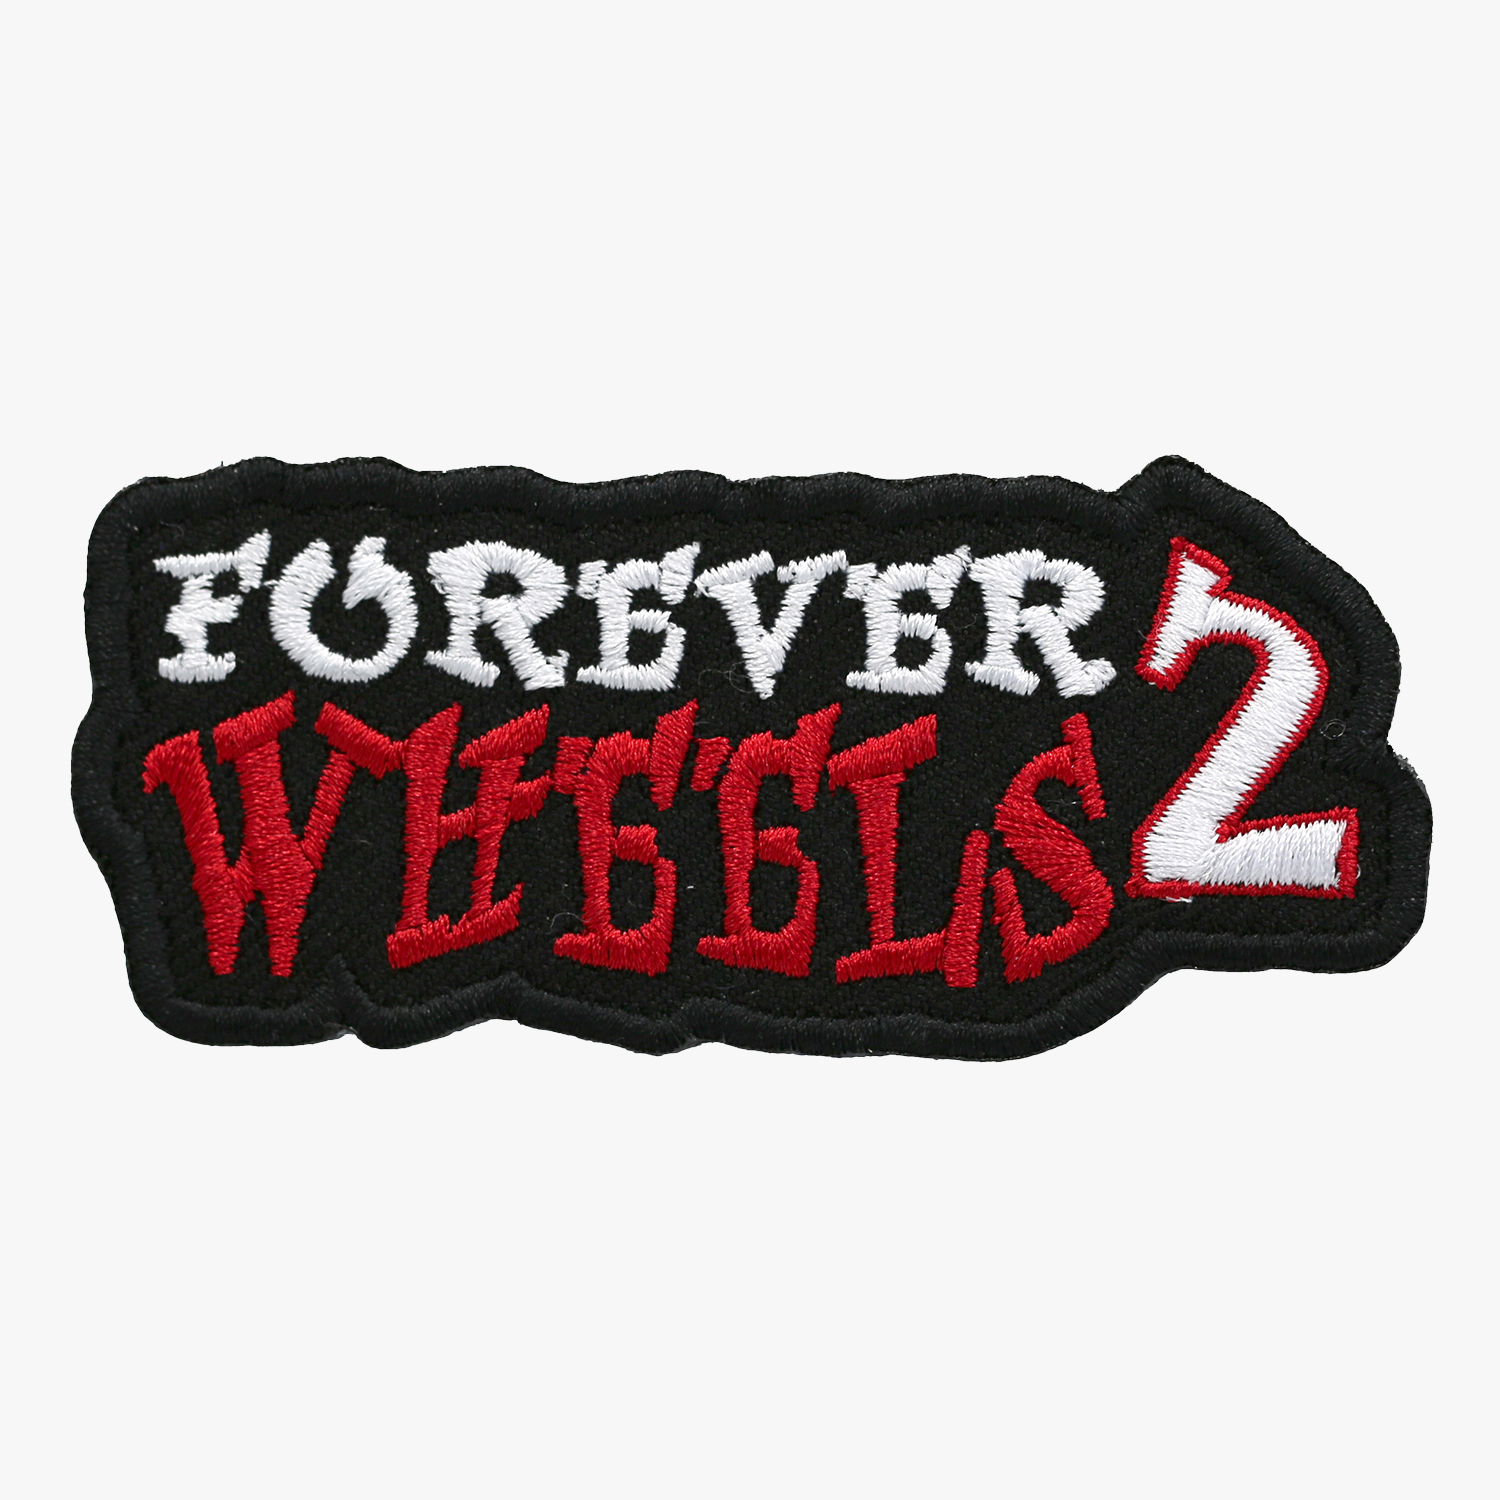 Forever Two Wheels Embroidered Biker Vest Patches